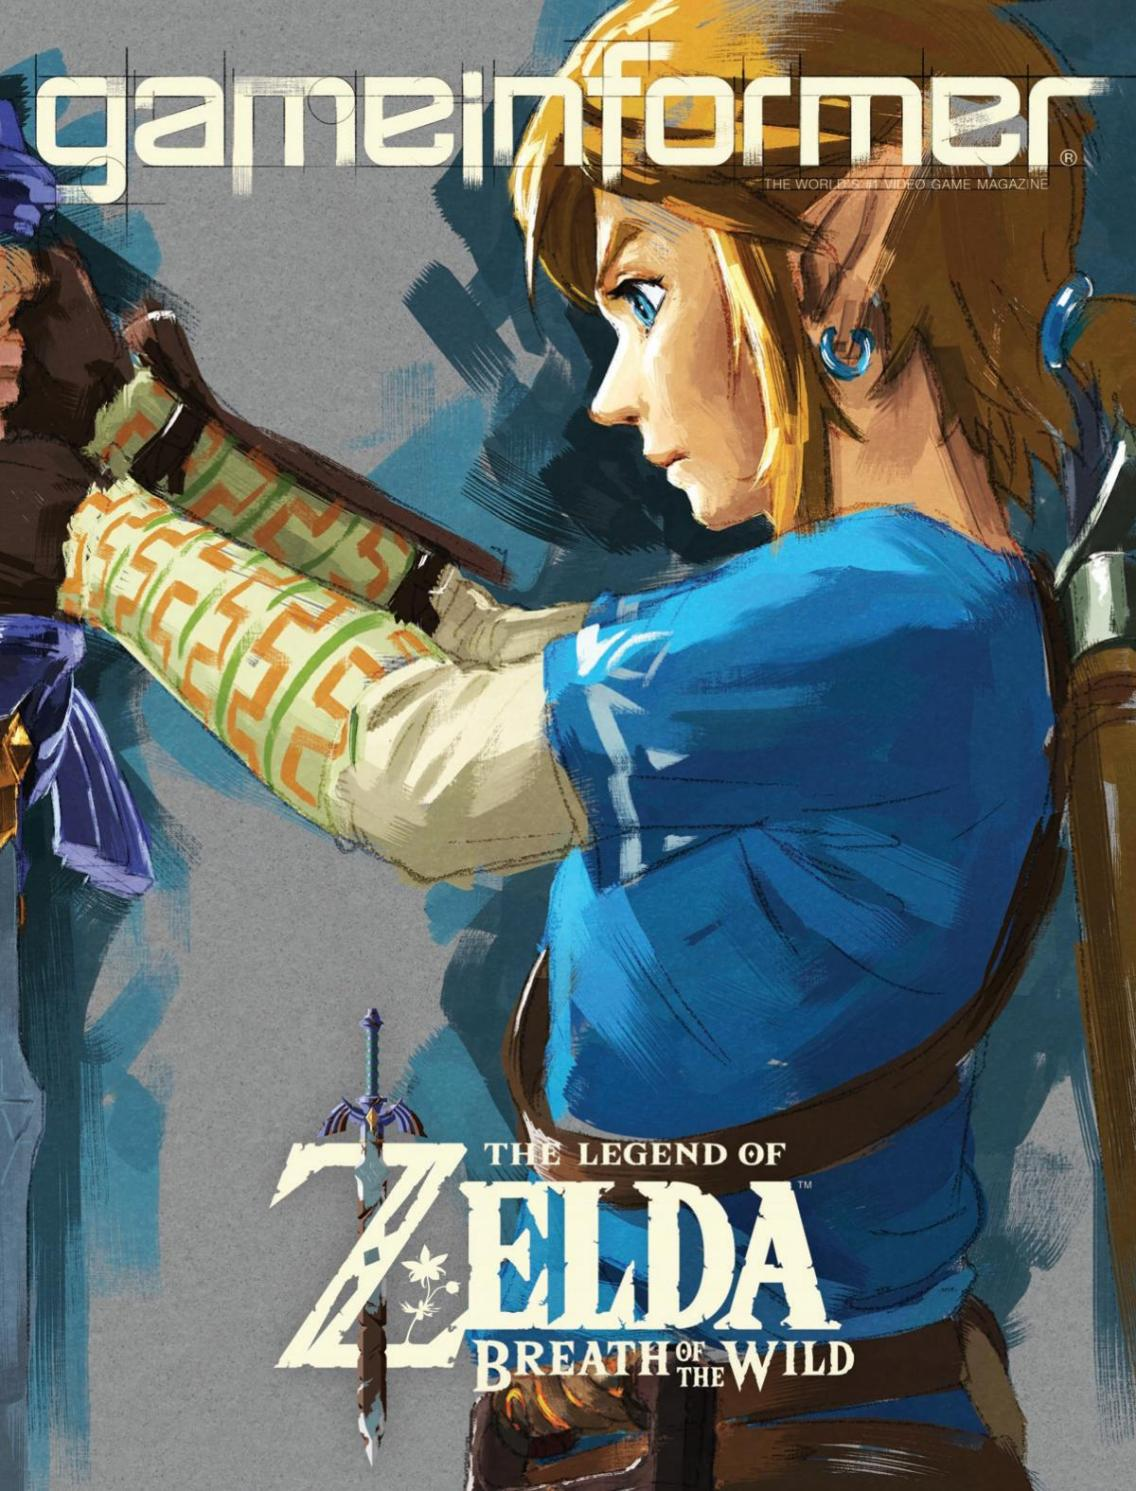 Game informer march 2017 by VPGamemagazine - issuu